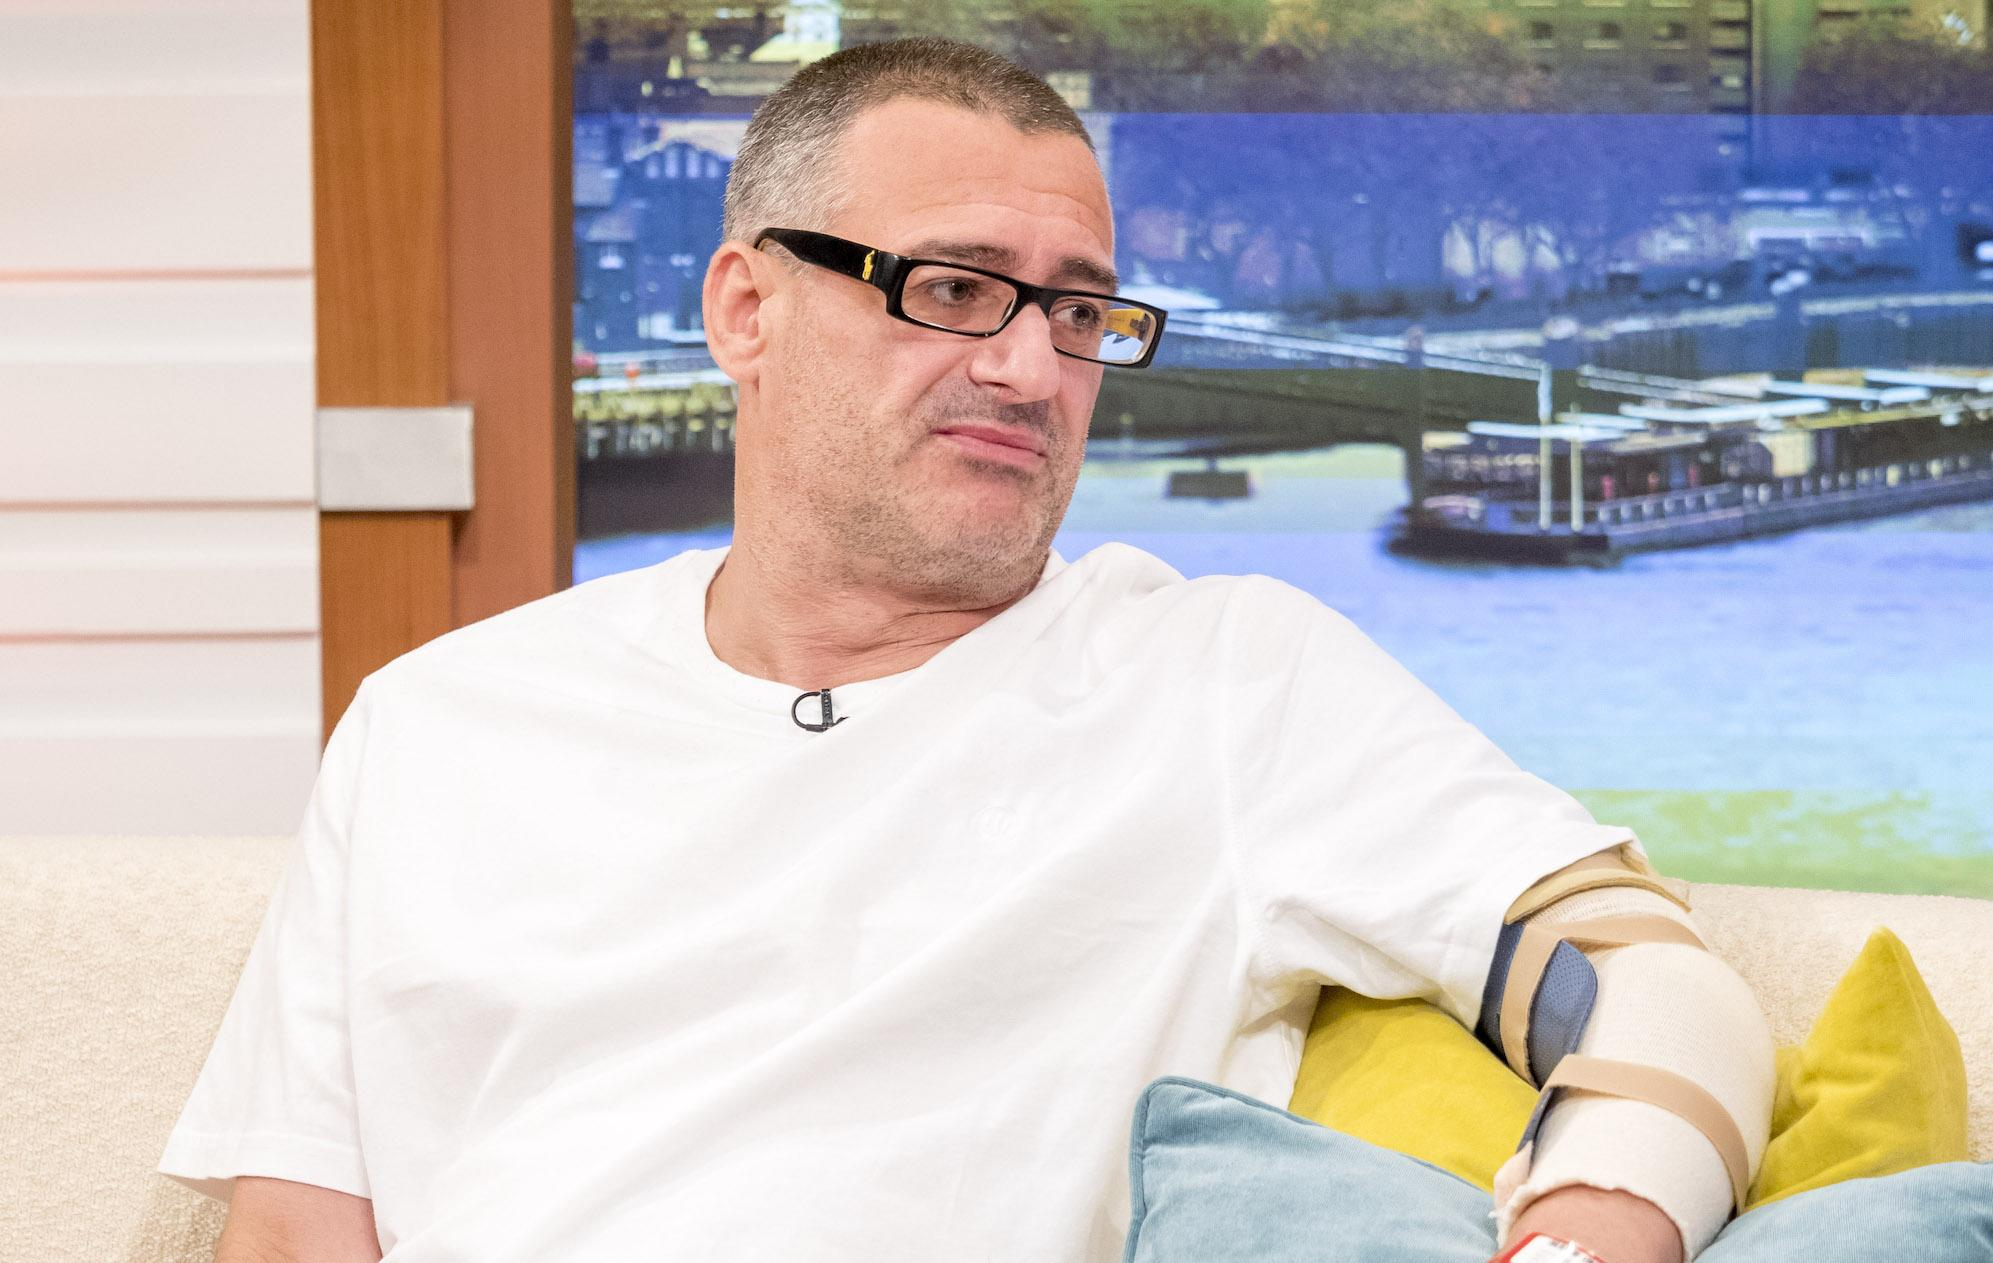 Roy Larner appears on Good Morning Britain after the London Bridge attack (Rex features)